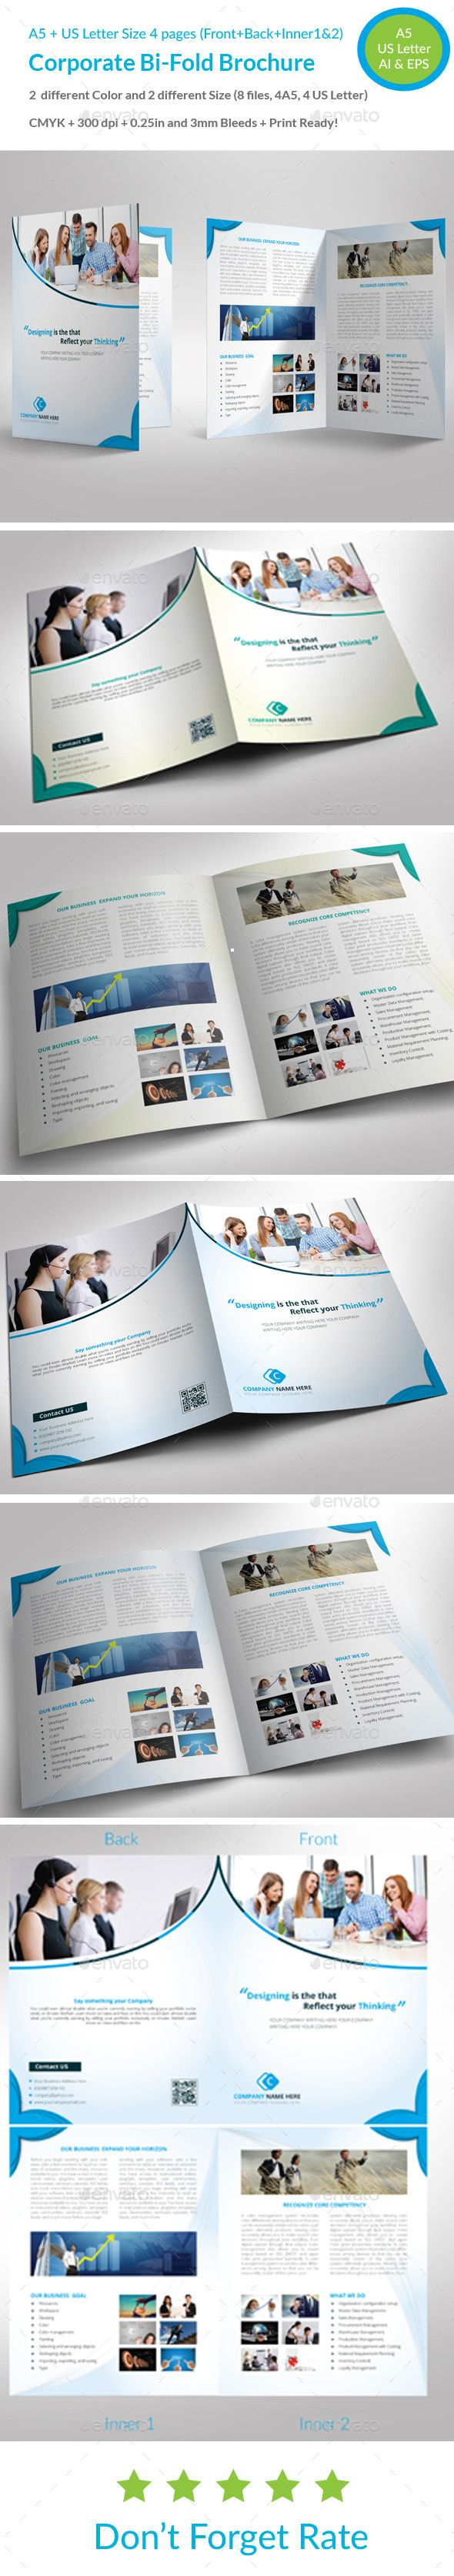 Corporate BiFold Brochure  Brochures Brochure Template And